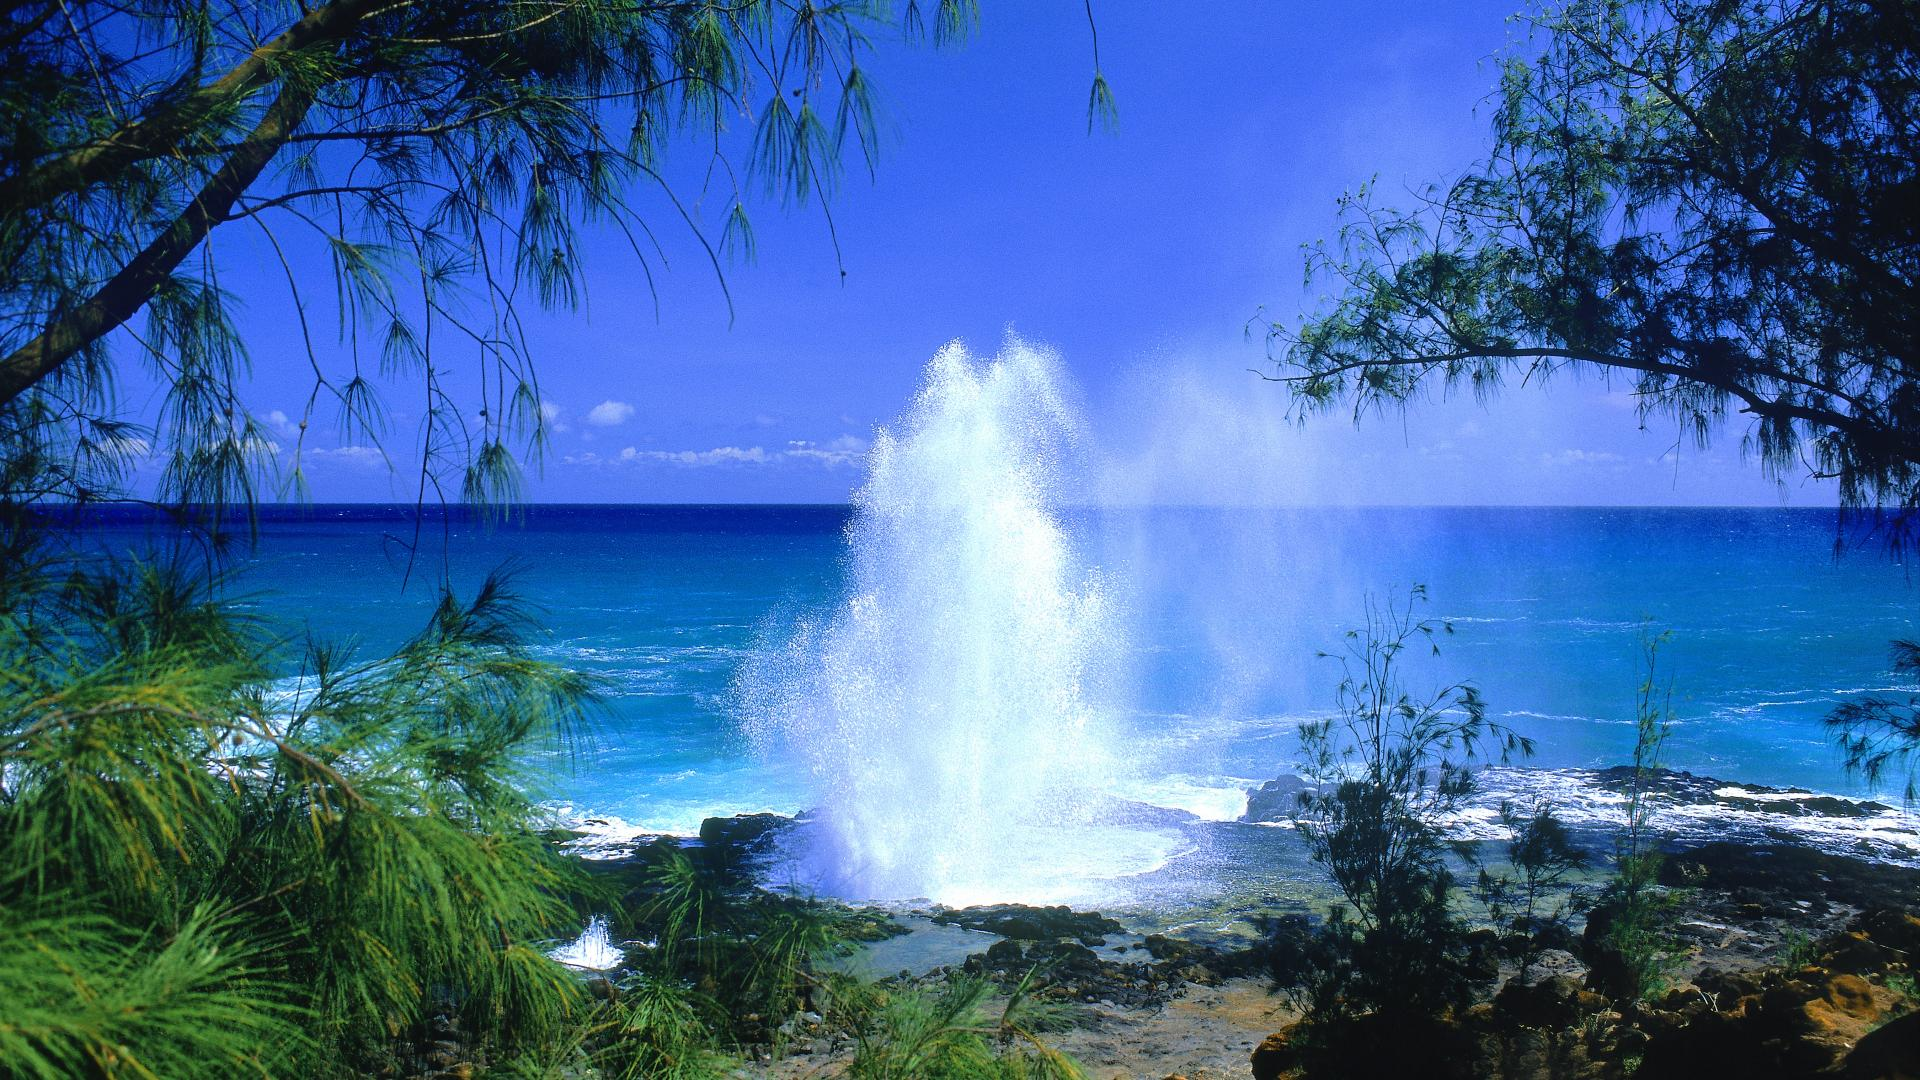 Free Hawaii Desktop Wallpapers - Wallpaper Cave